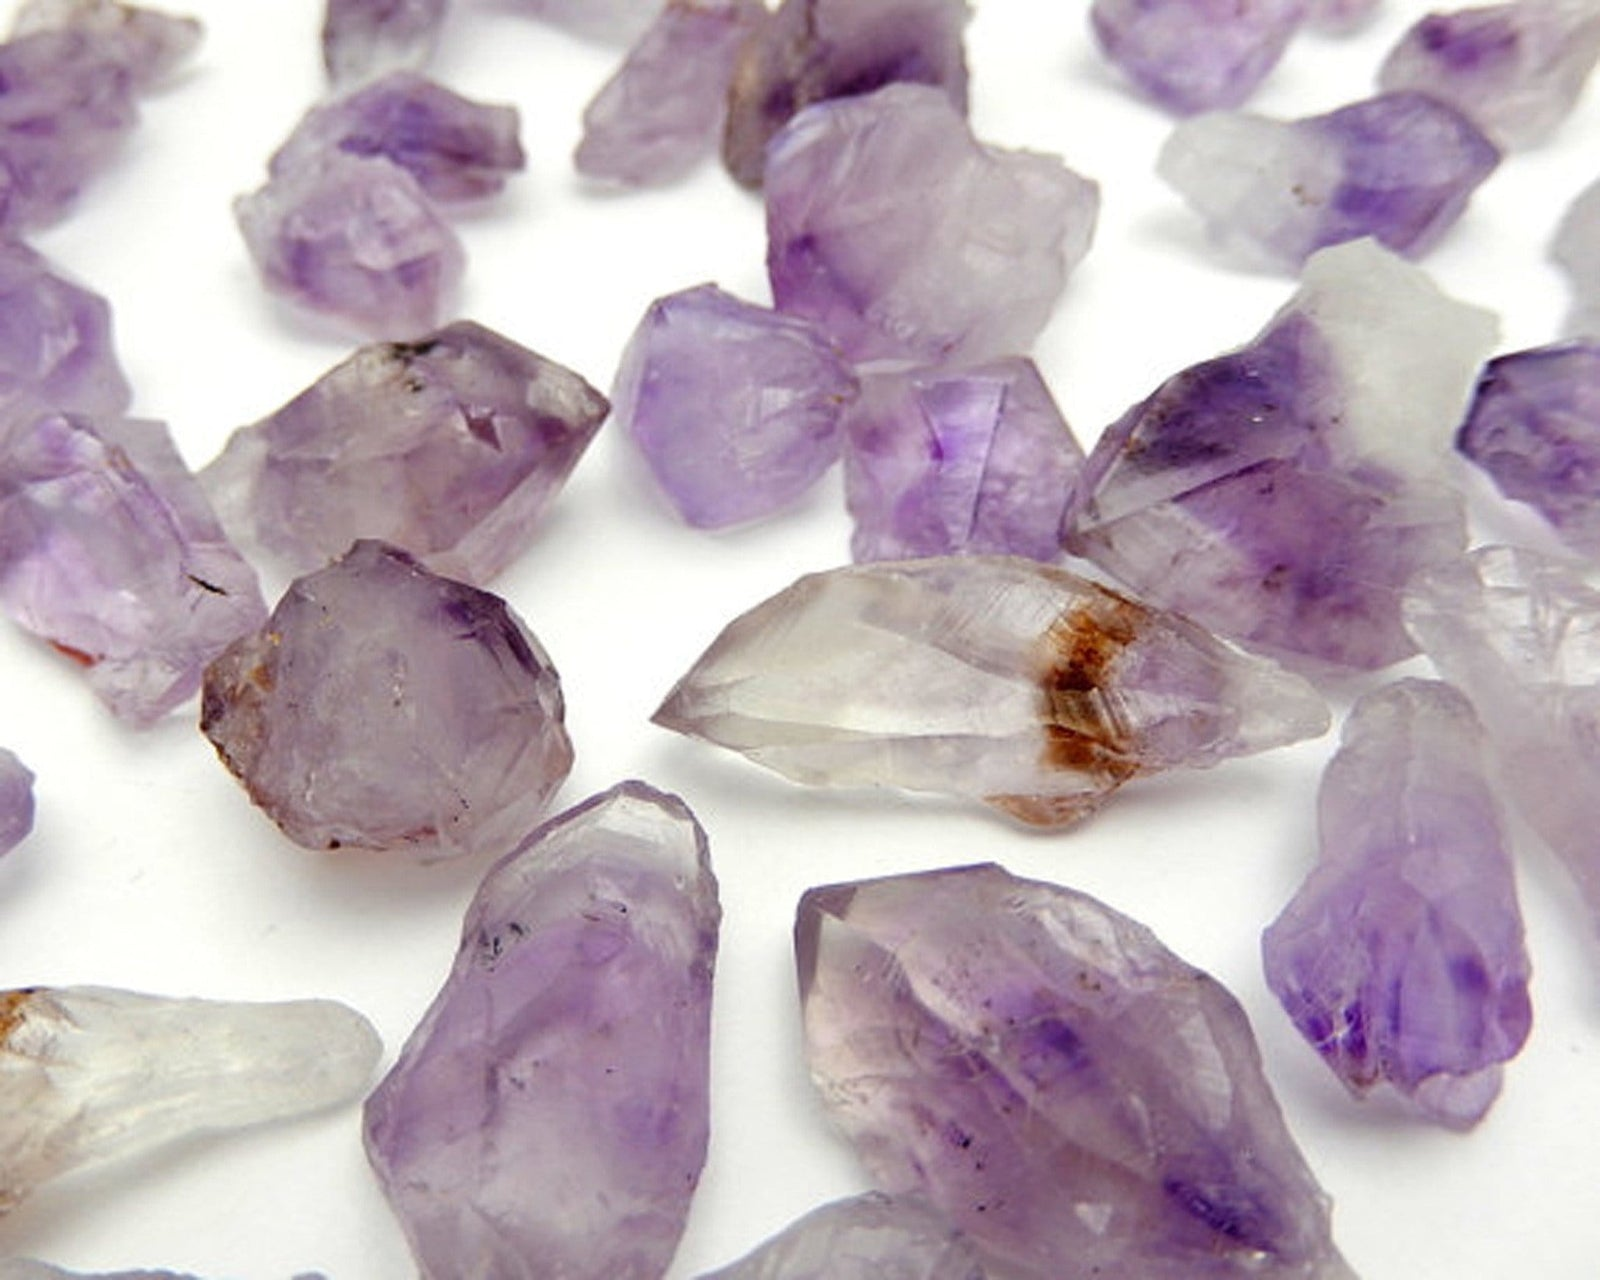 Raw Points - Raw Amethyst Points By The Pound OB7B2